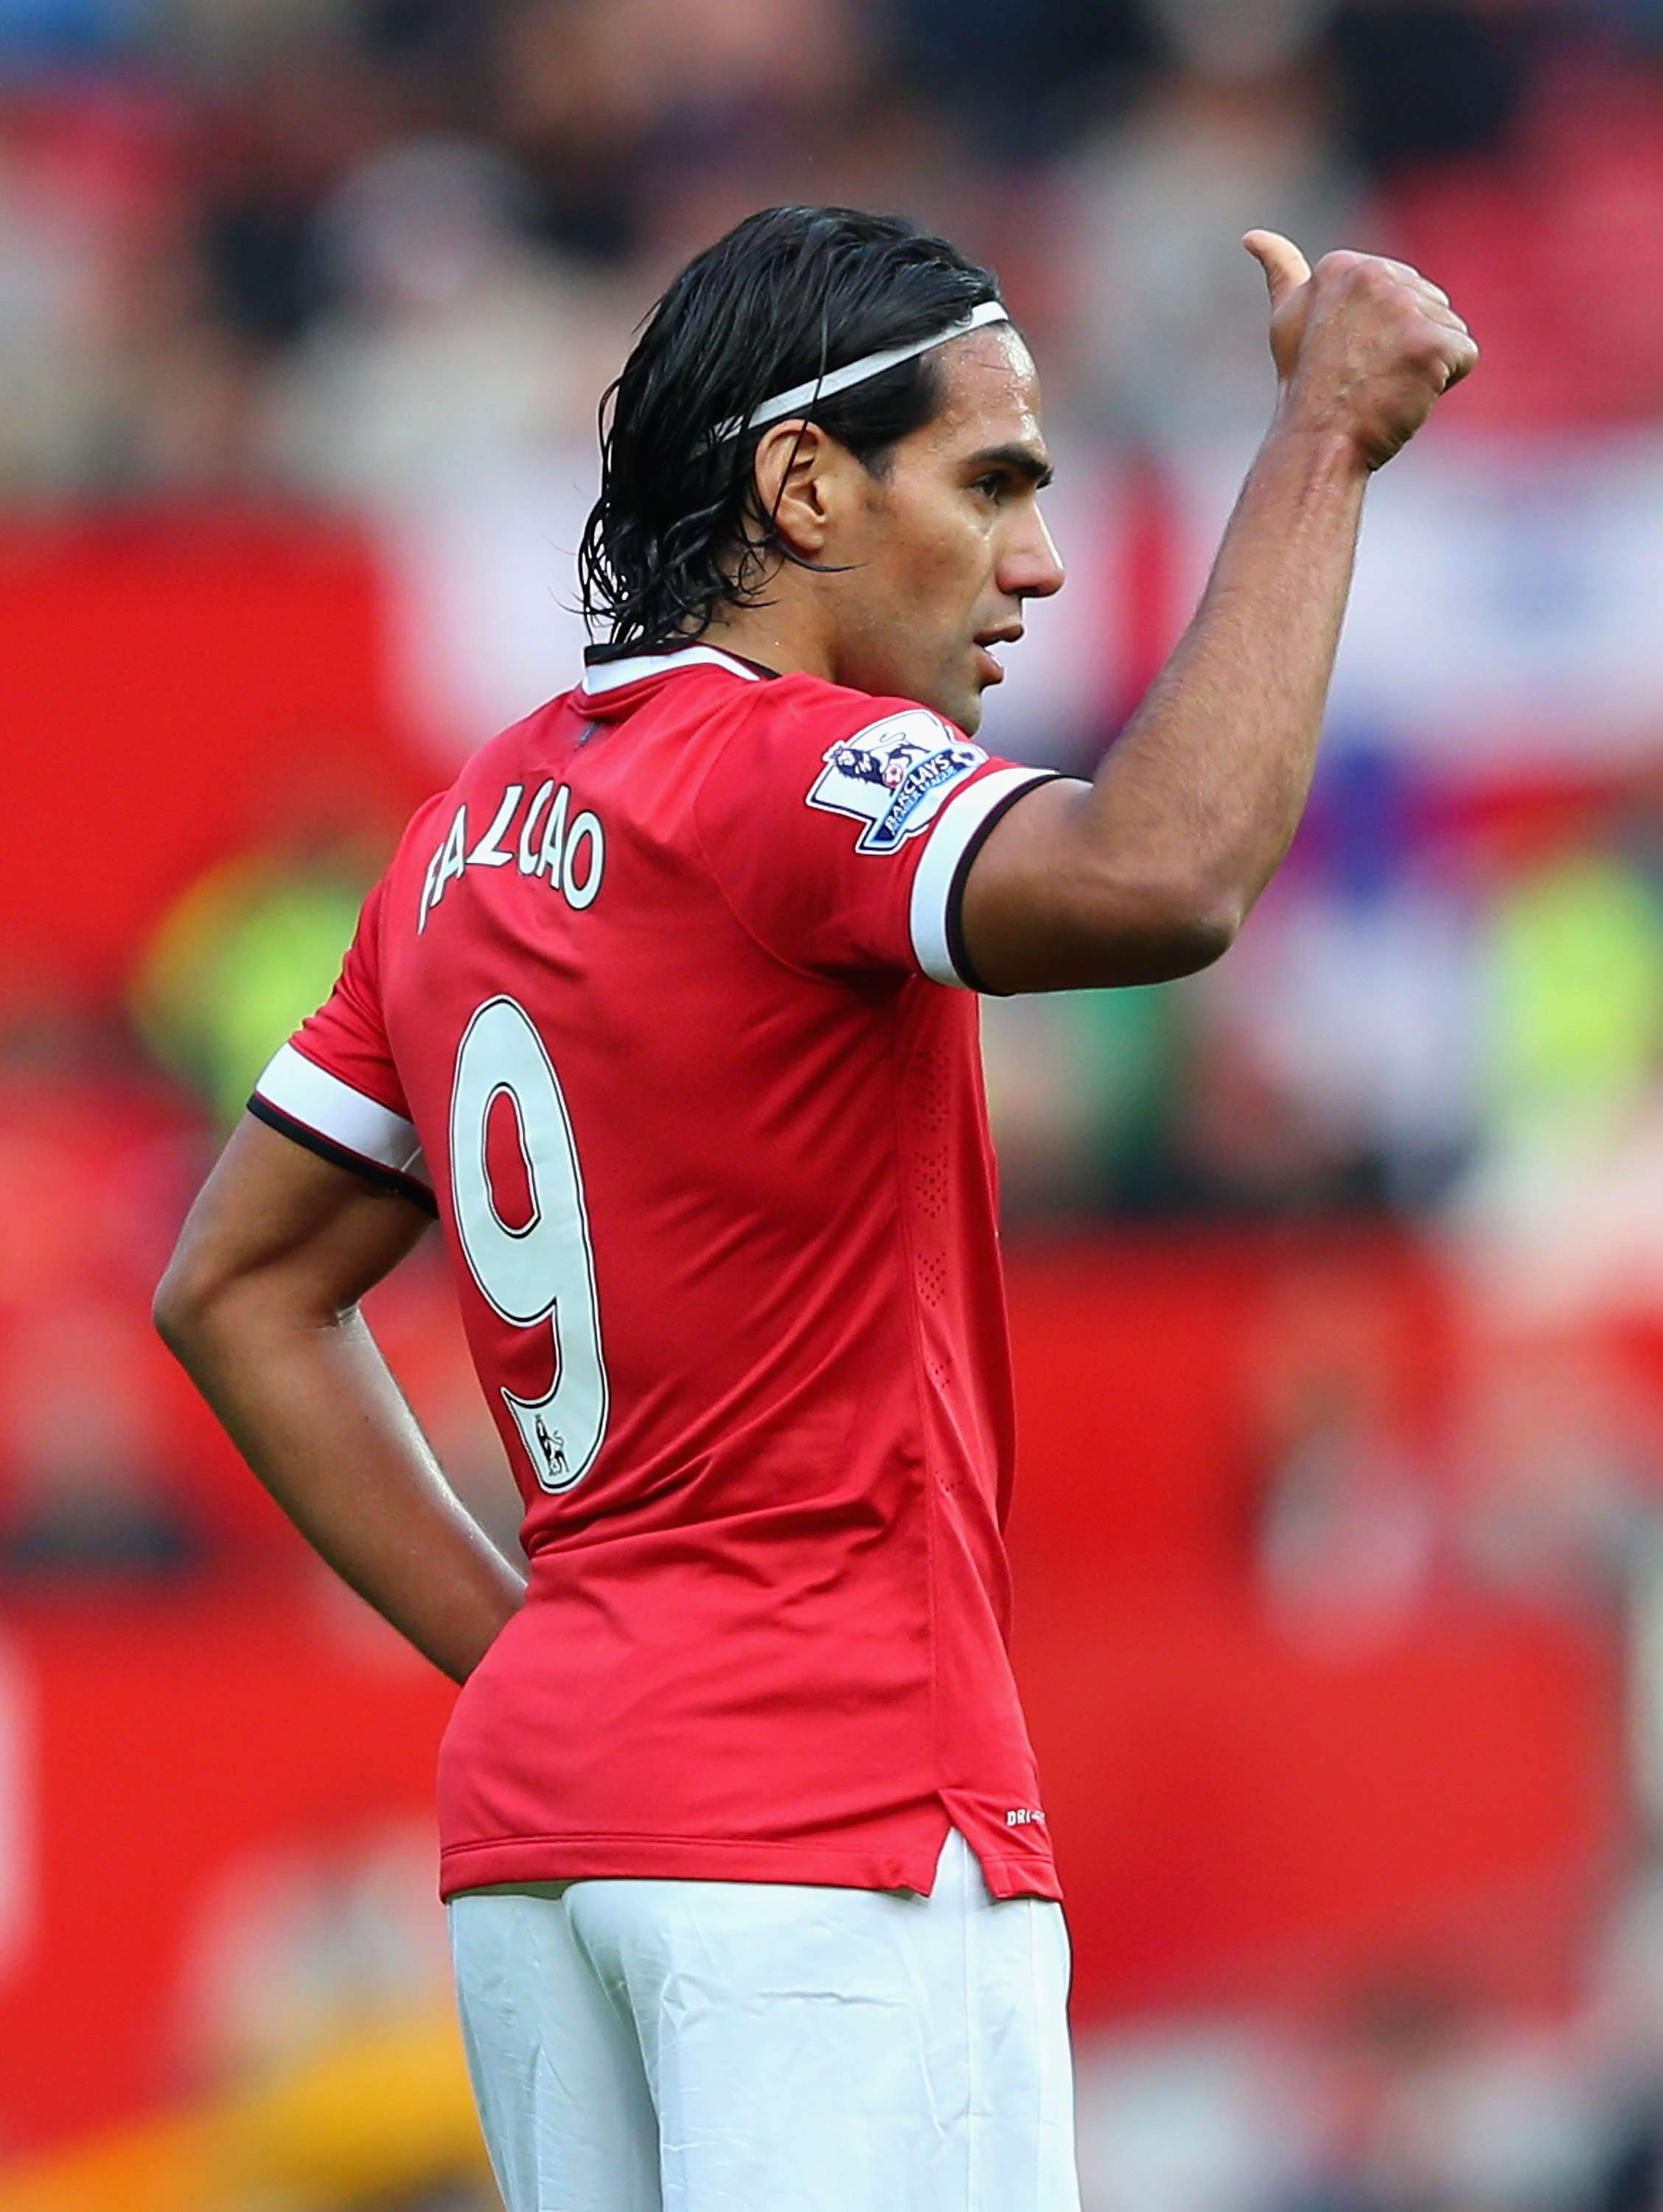 Radamel Falcao se sintió muy a gusto en debut ton Manchester United. Foto: Getty Images